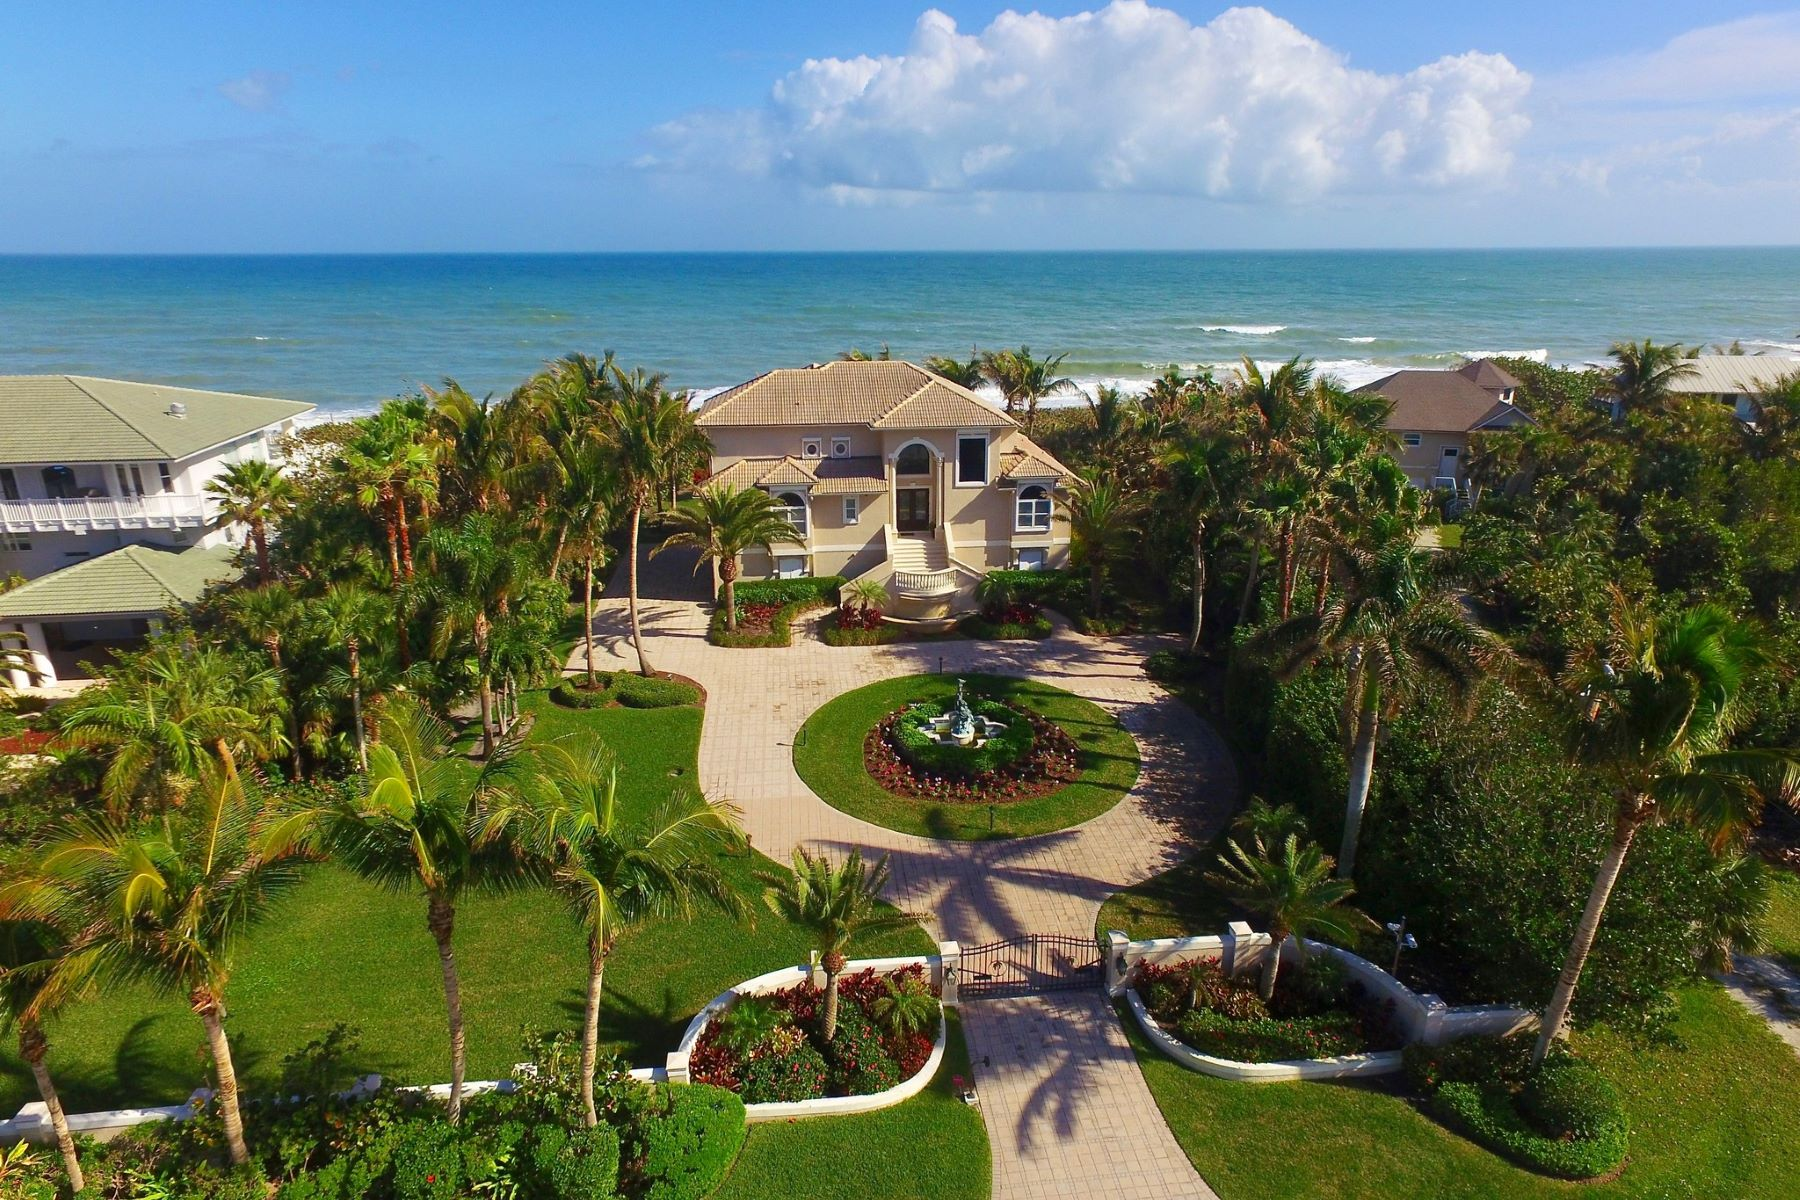 Single Family Home for Sale at Ocean To River Gated Oceanfront Estate 12440 Highway A1A Vero Beach, Florida, 32963 United States